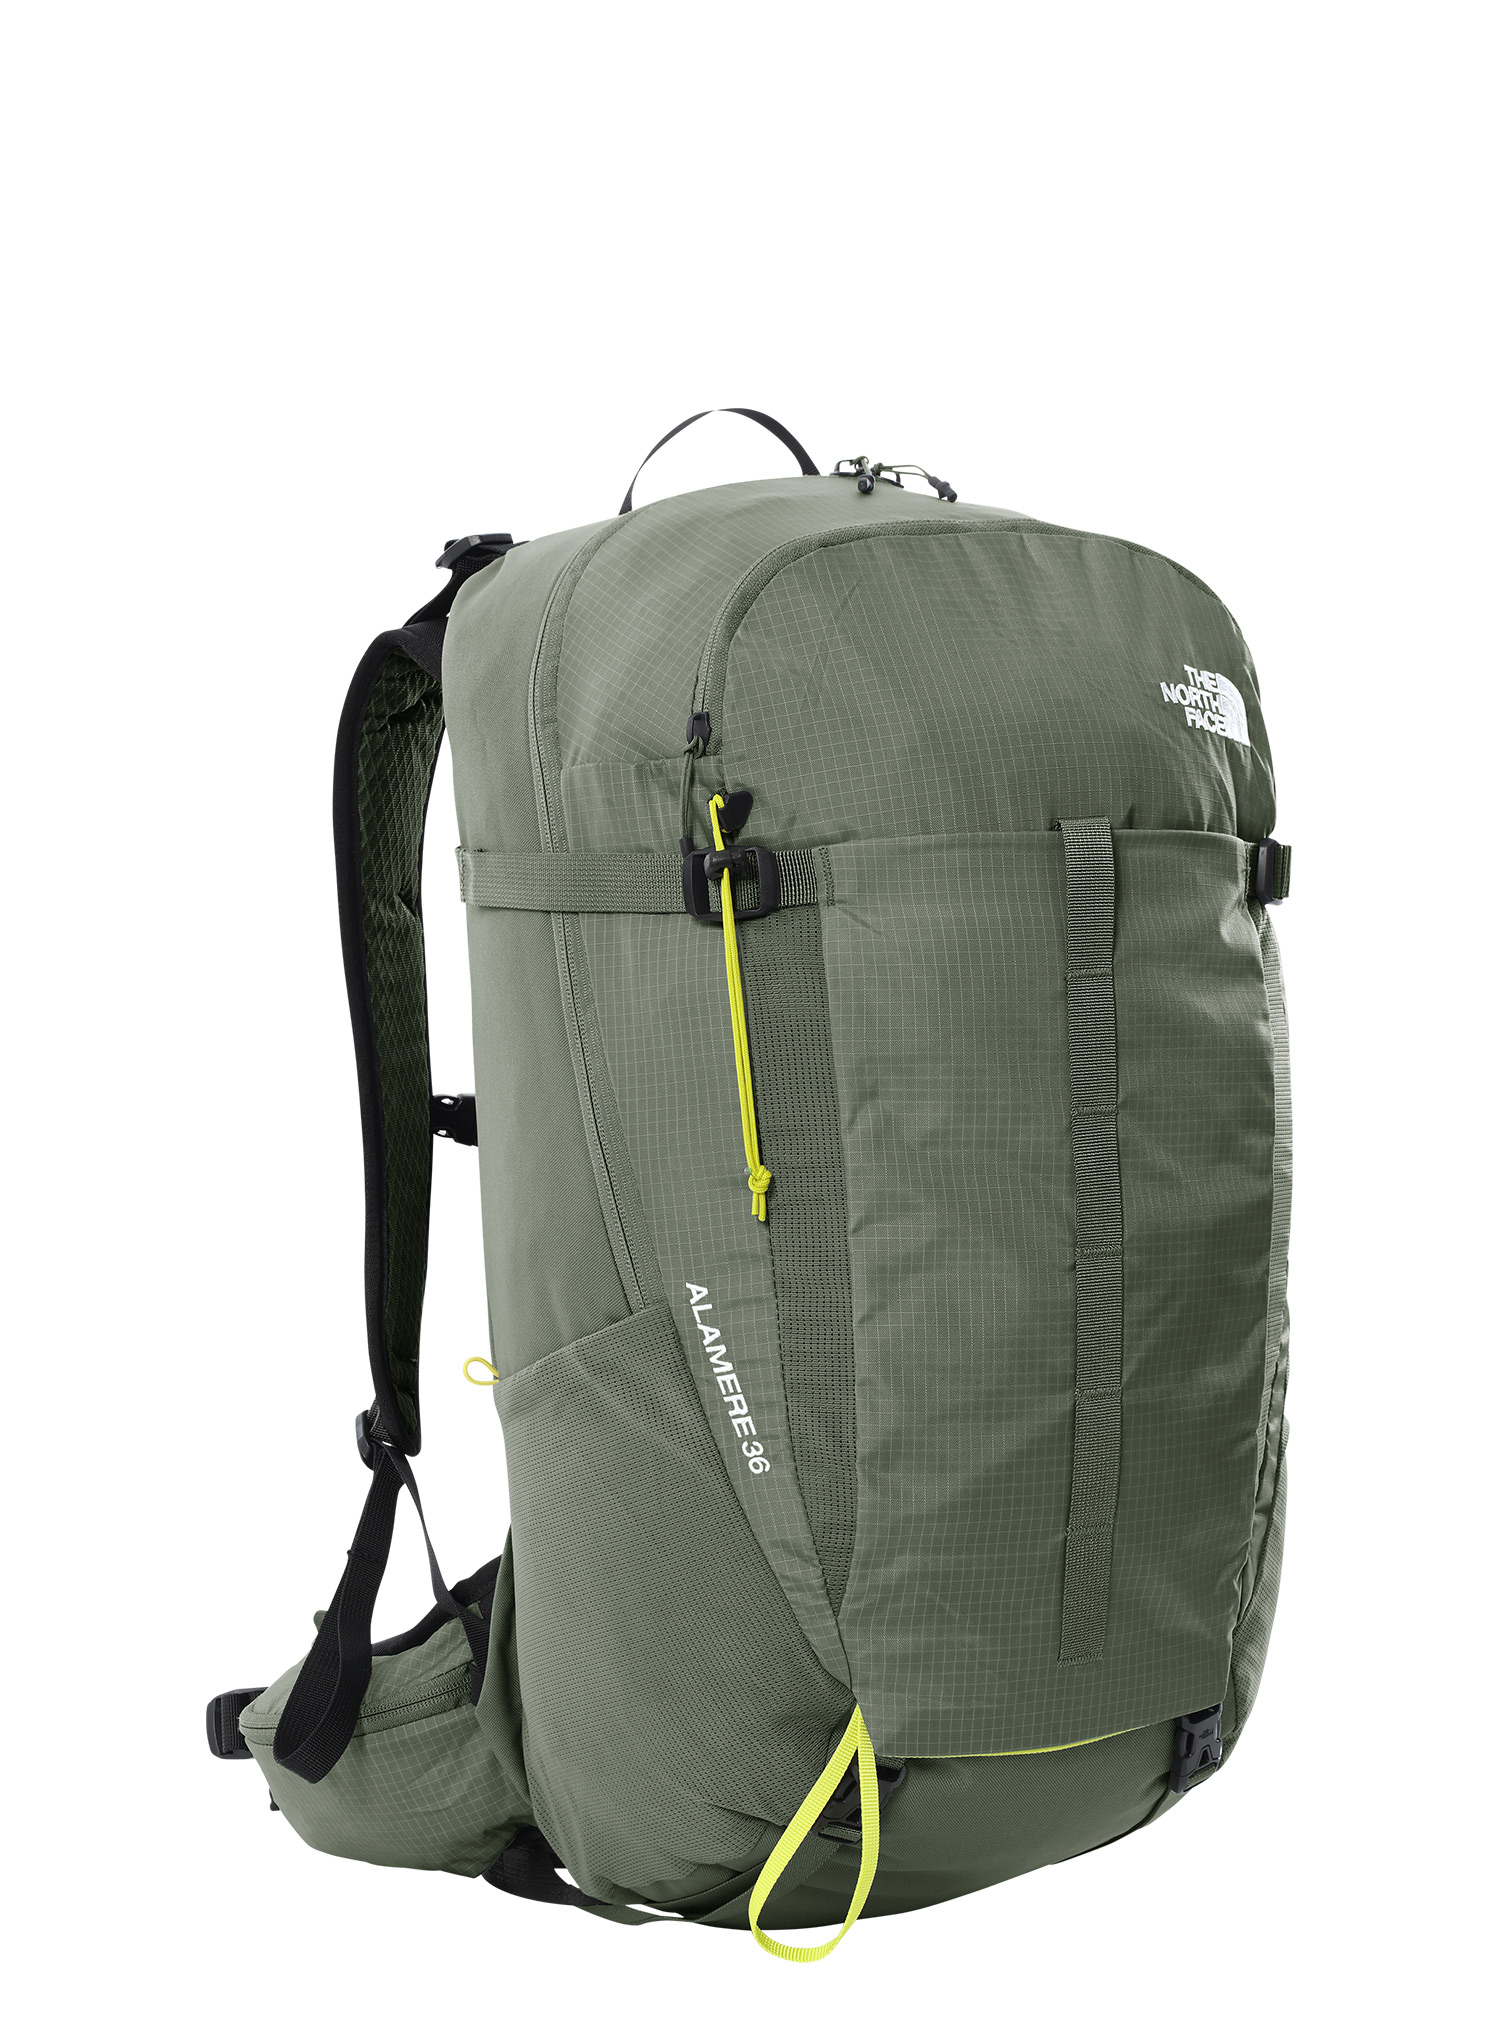 Plecak turystyczny The North Face Alamere 36 - green/spring green - zdjęcie nr. 1